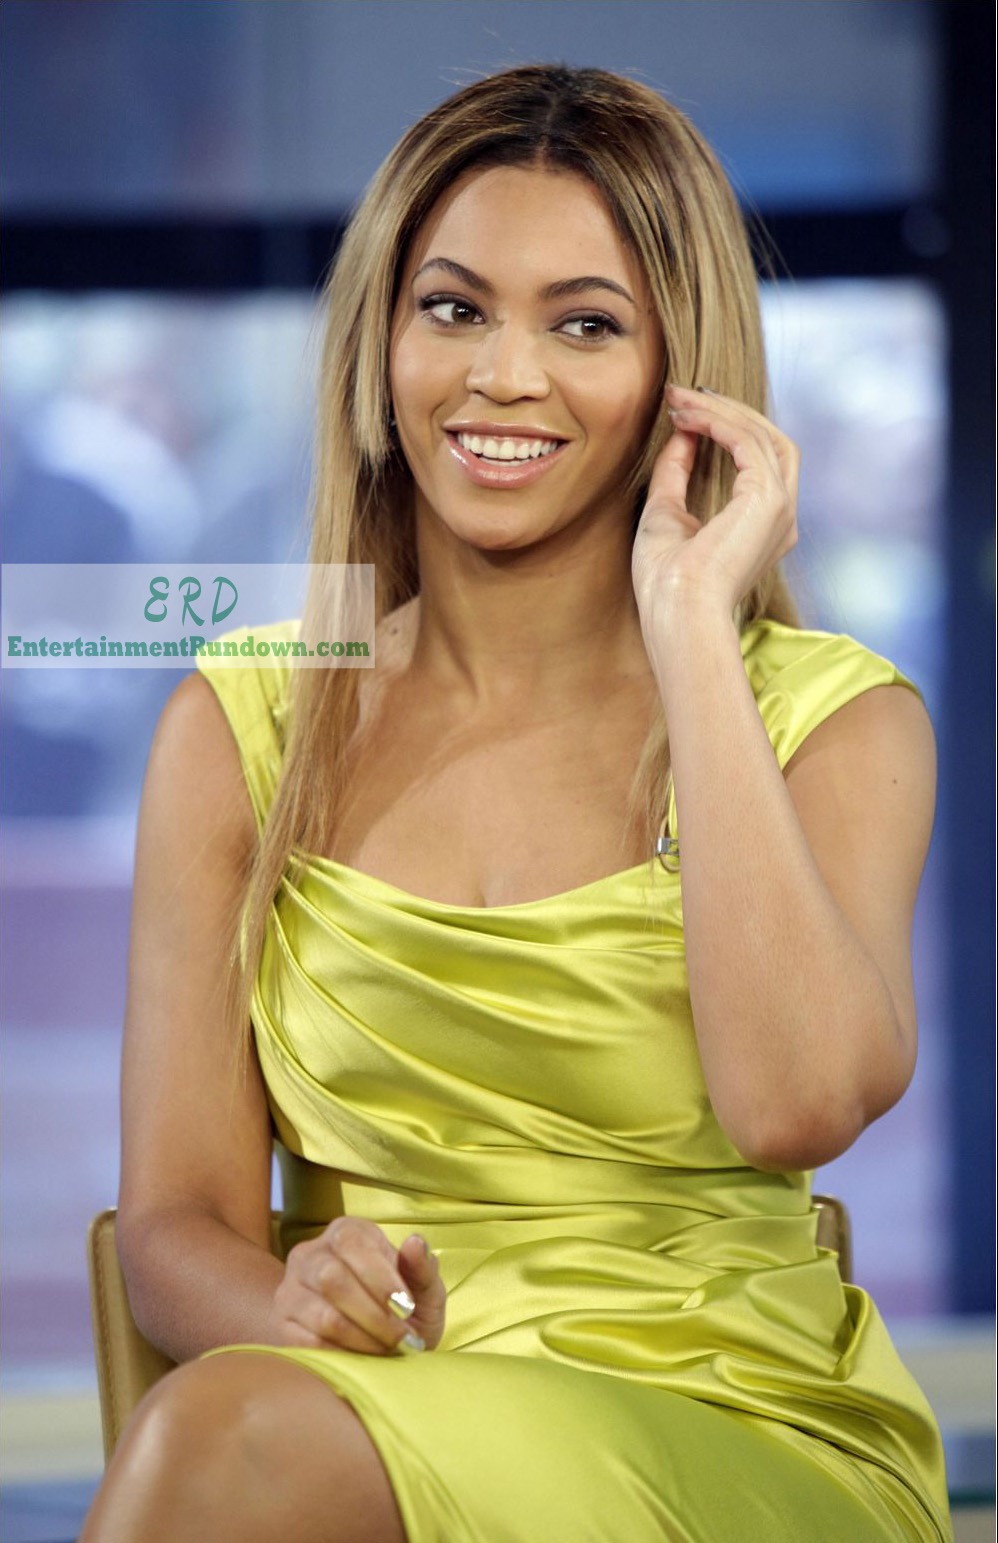 beyonce on the today show entertainment rundown